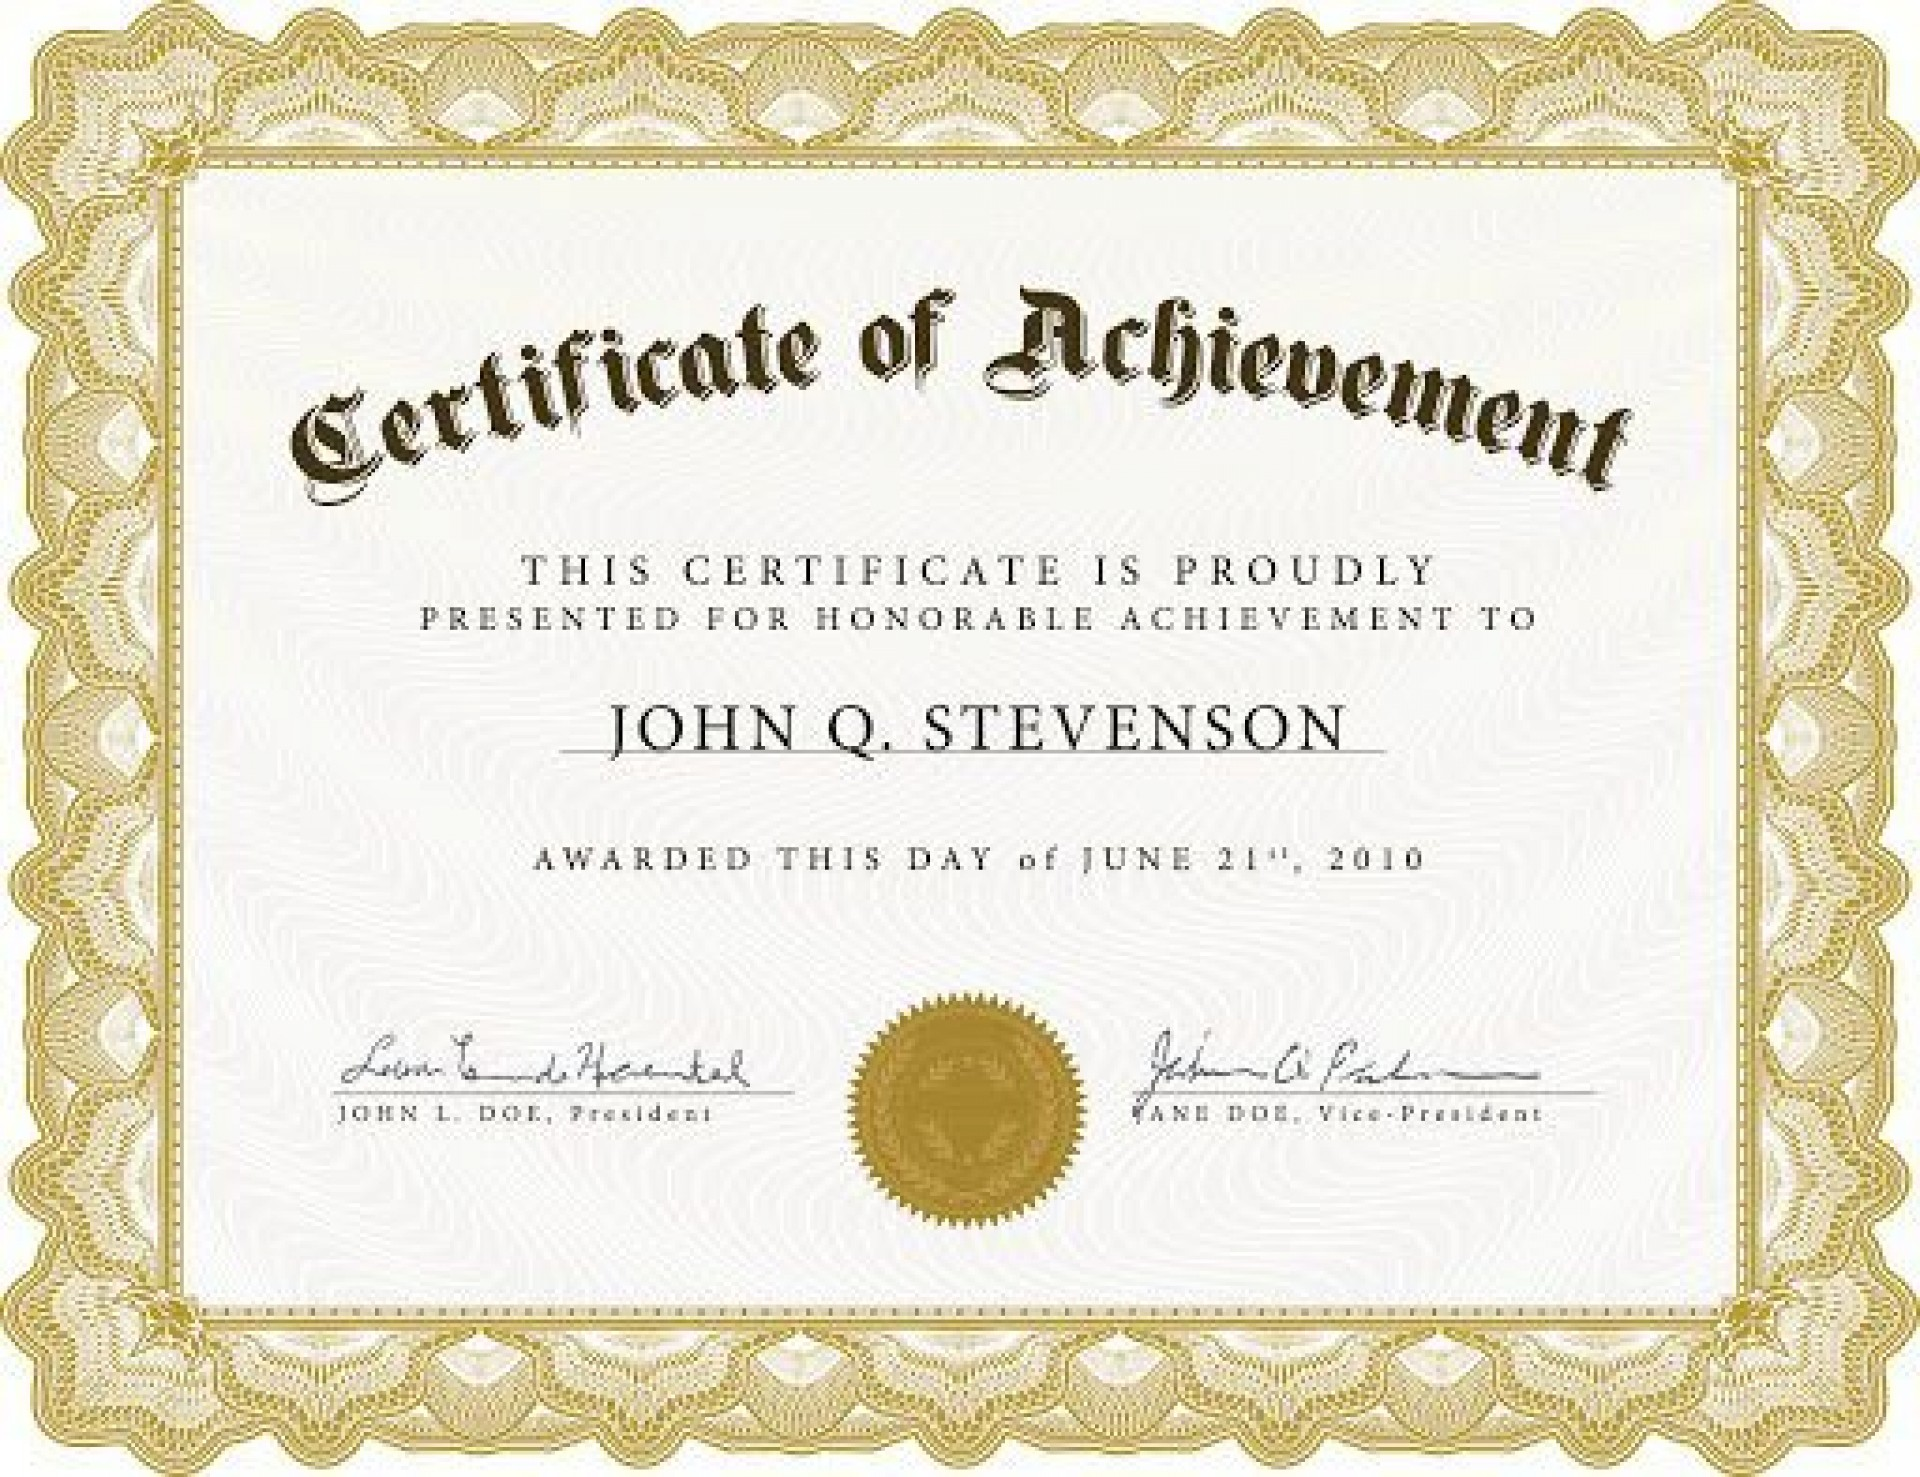 009 Outstanding Free Certificate Template Word Download Example  Of Appreciation Doc Award Border1920